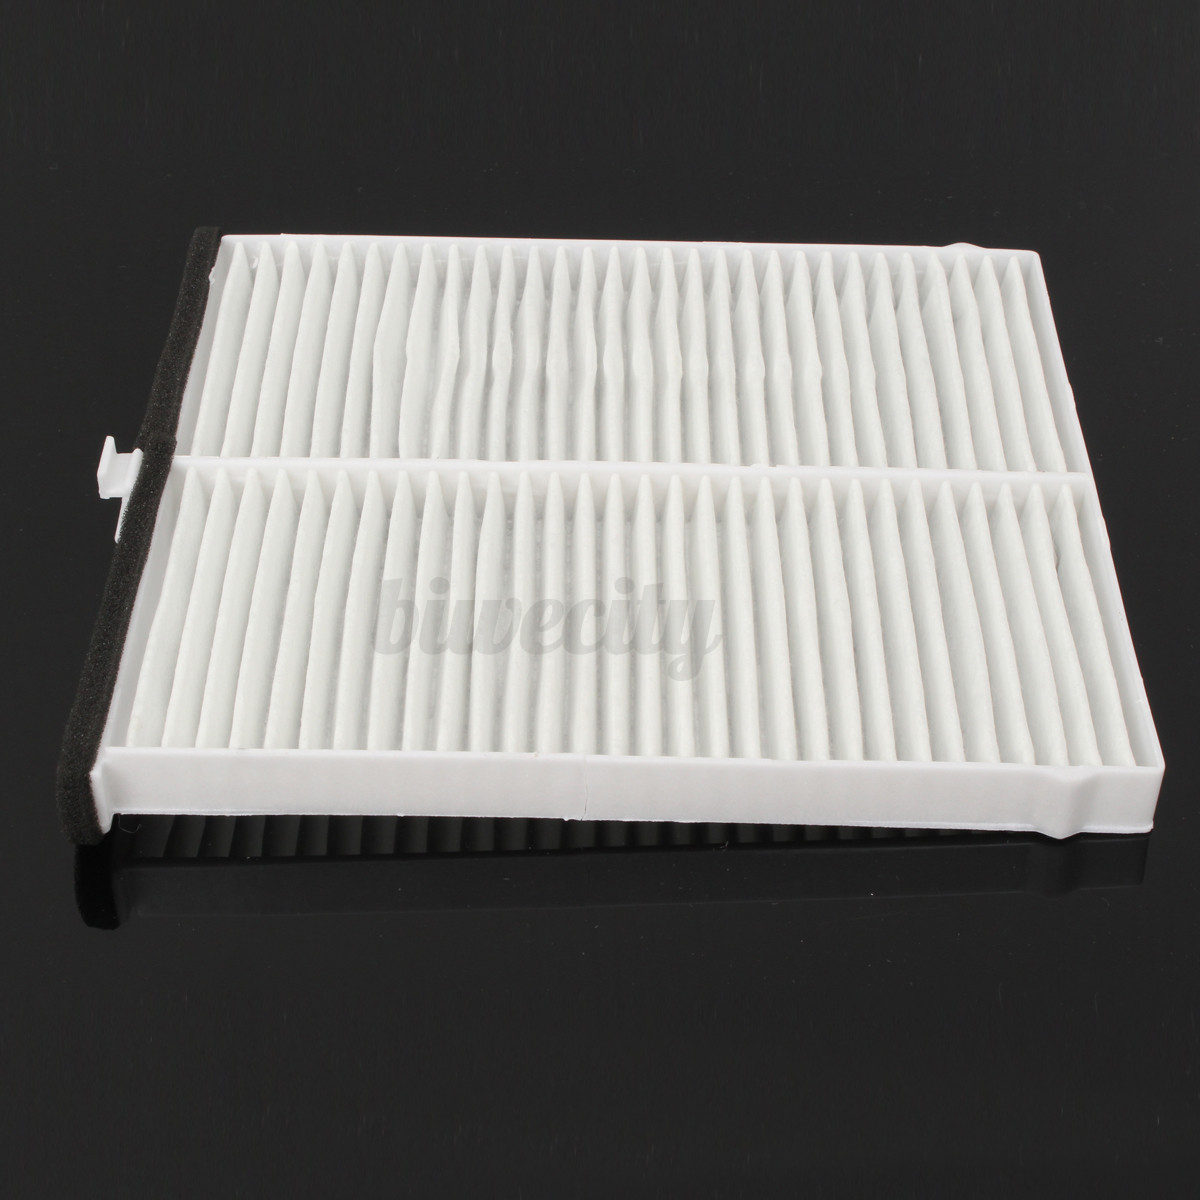 1pc cabin air dust filter replacement fits for mazda 3 6 for Replace cabin air filter mazda cx 5